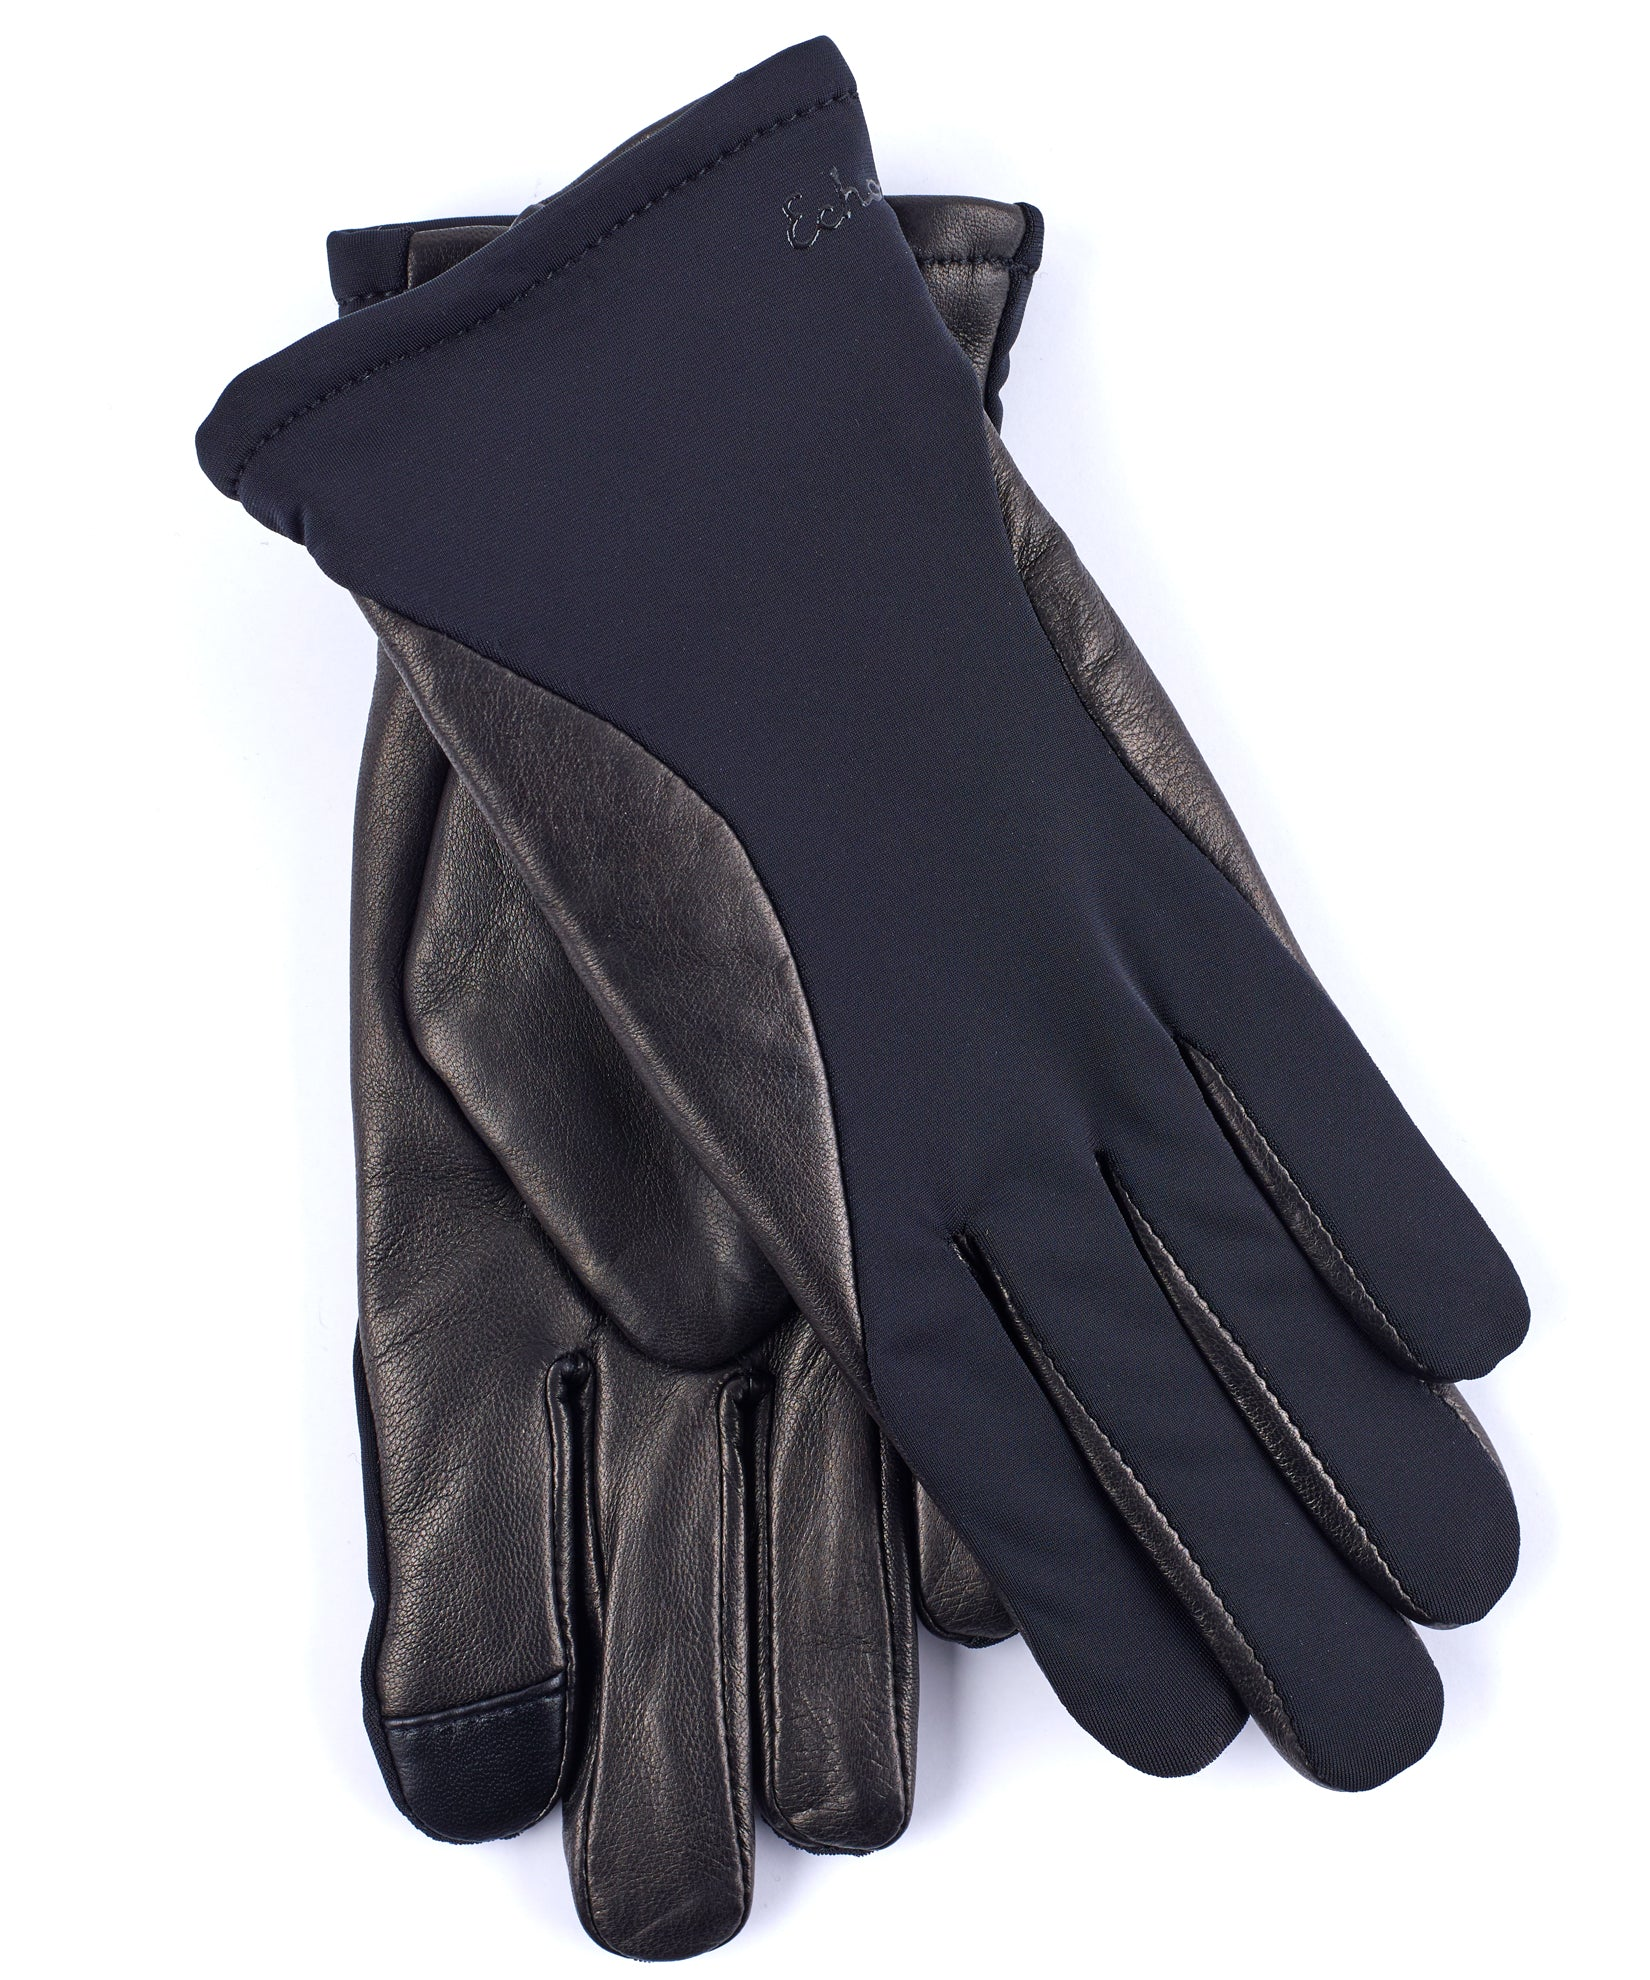 Echo Black - Contour Leather Superfit Glove